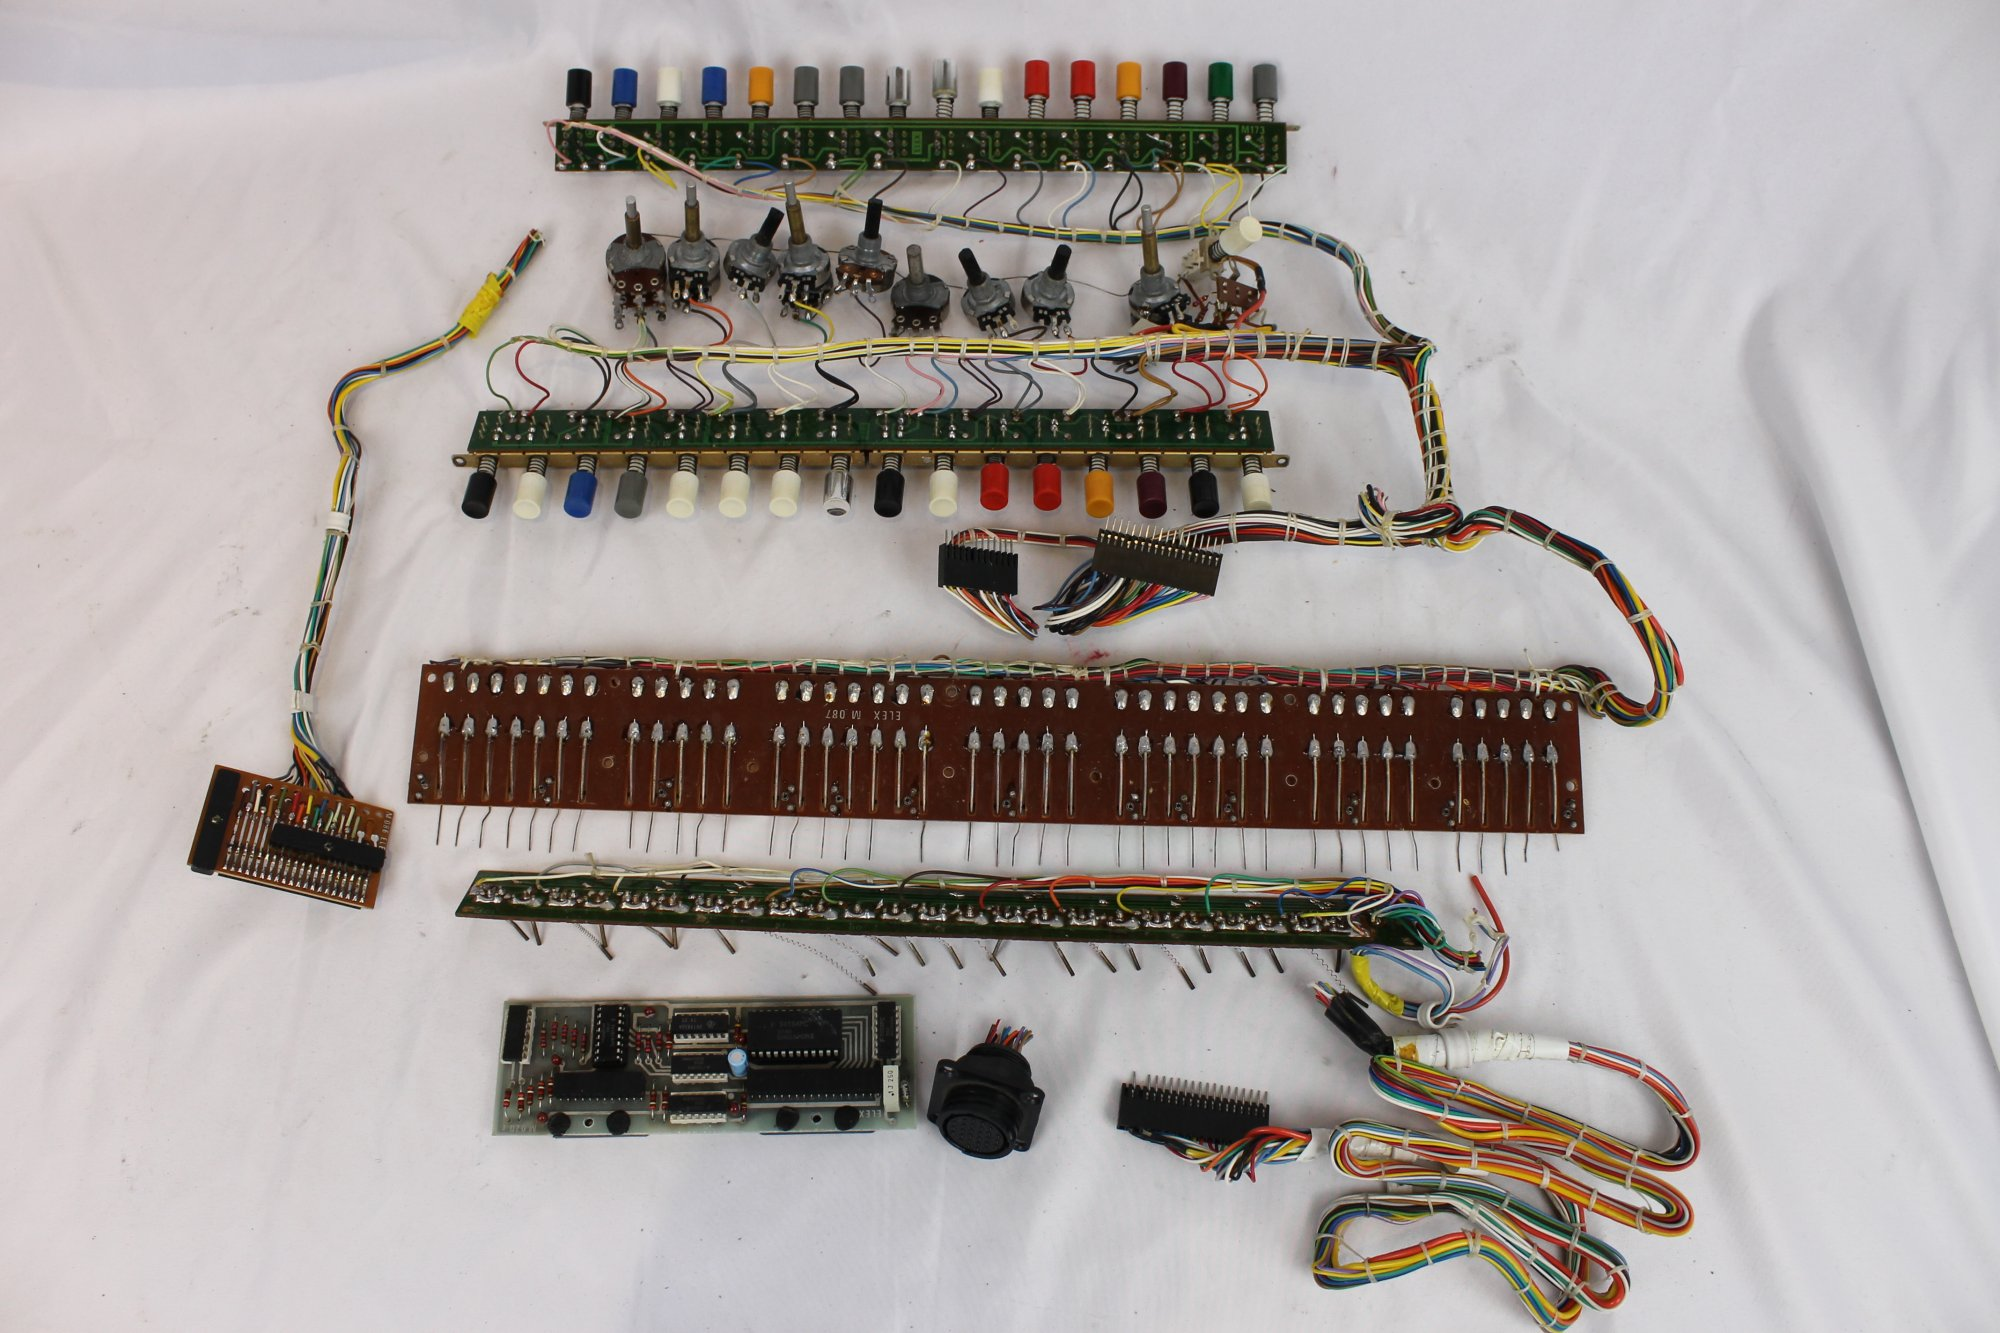 Excelsior Digisyzer Accordion Parts - Electronic Components